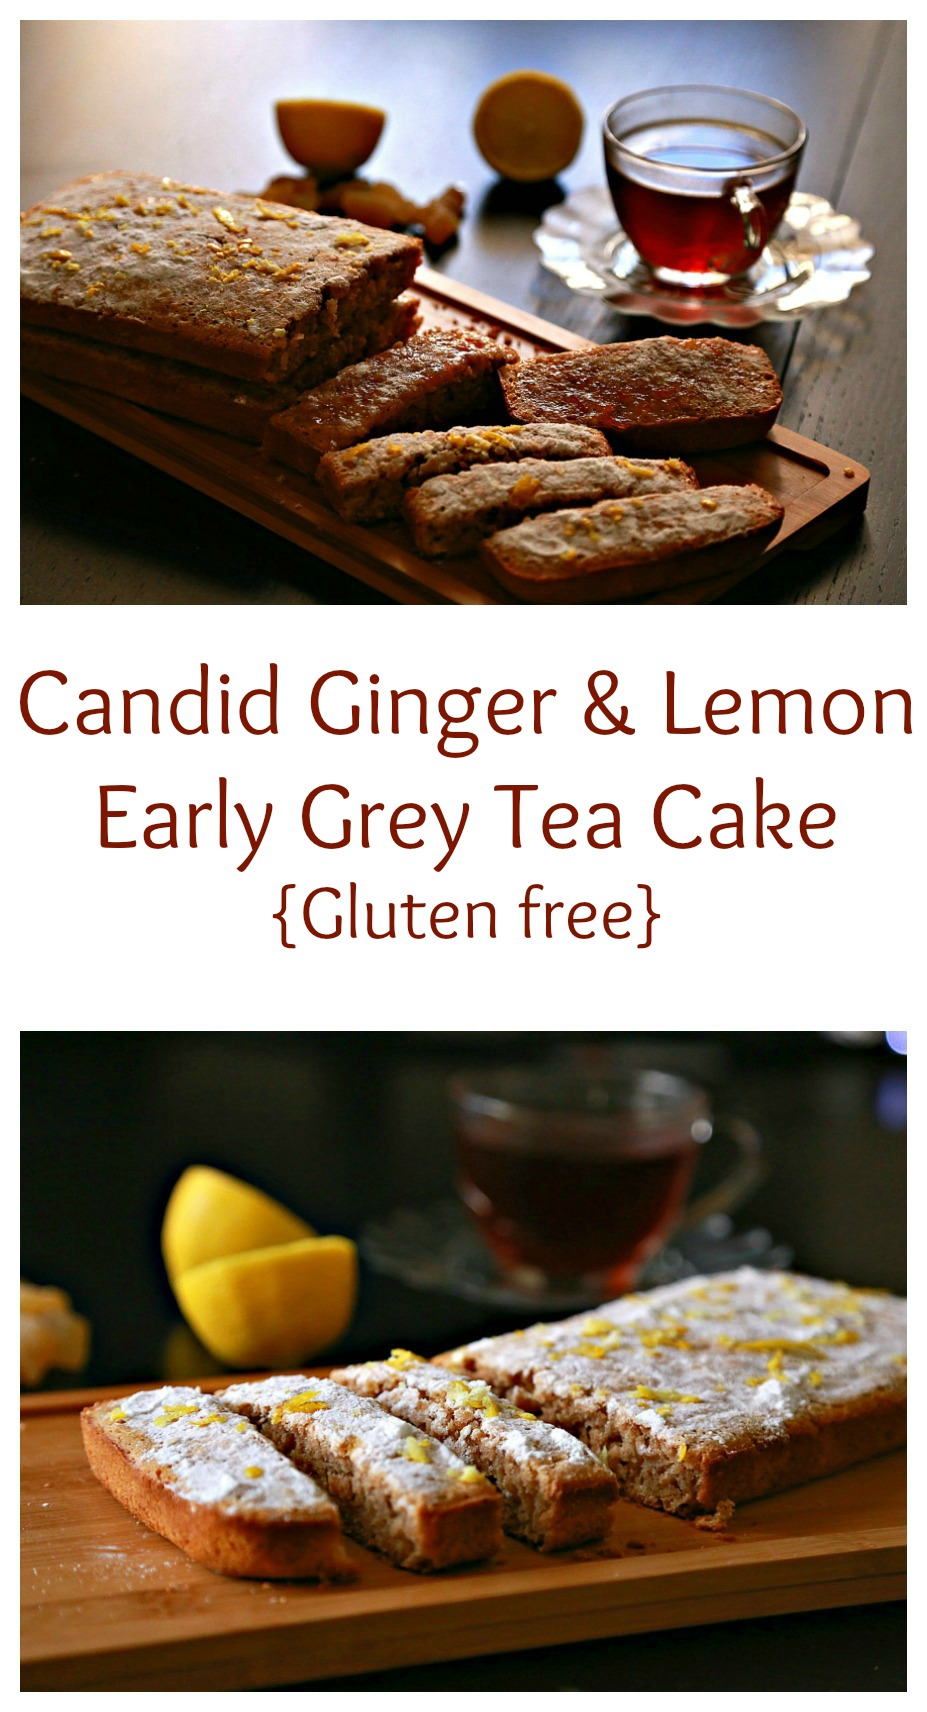 Candid ginger cake collage edited